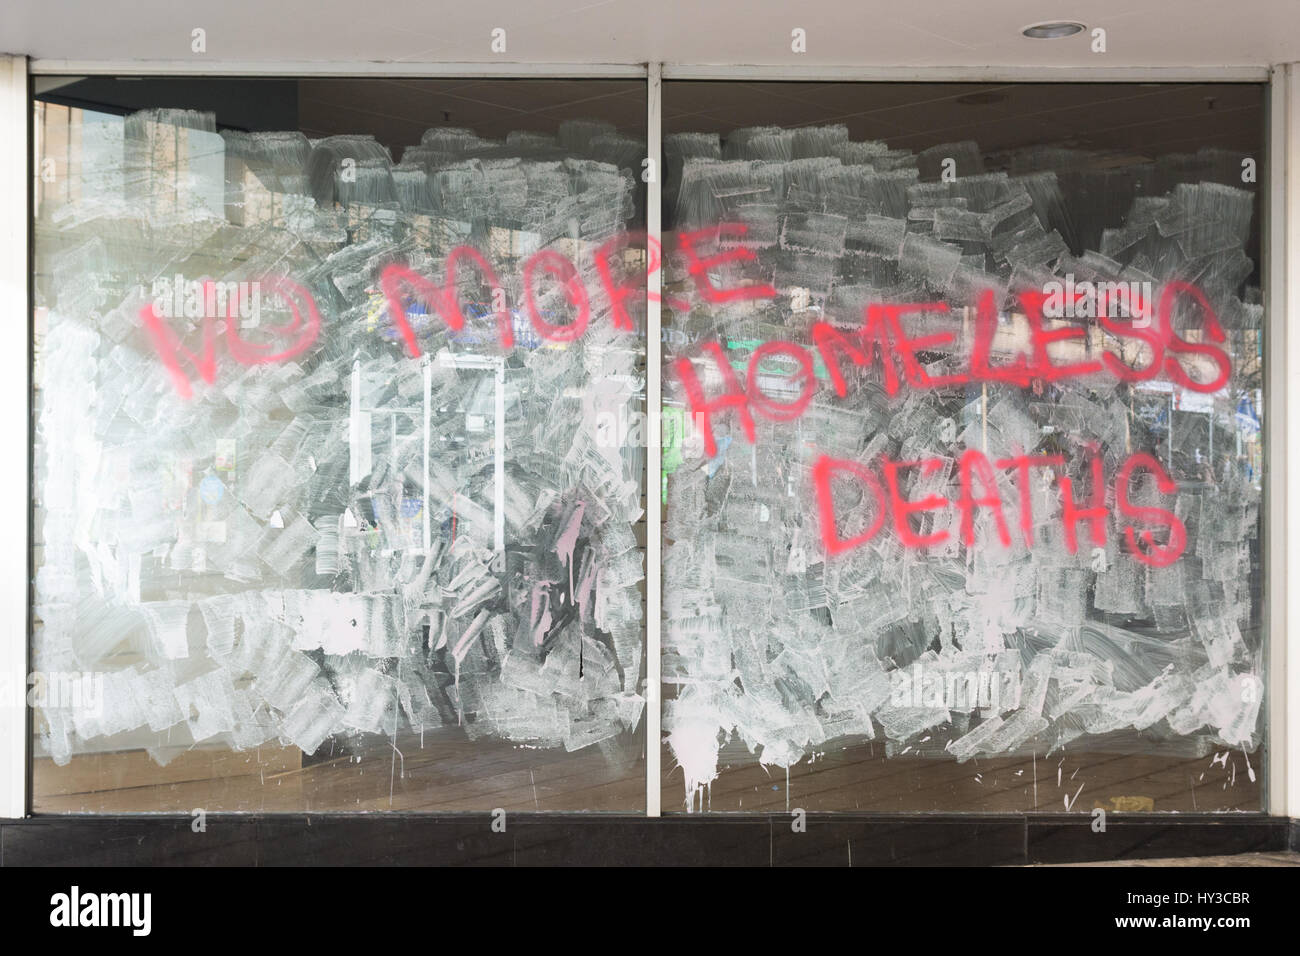 No more homeless deaths written on the windows of closed empty bhs building in Glasgow city centre - Stock Image